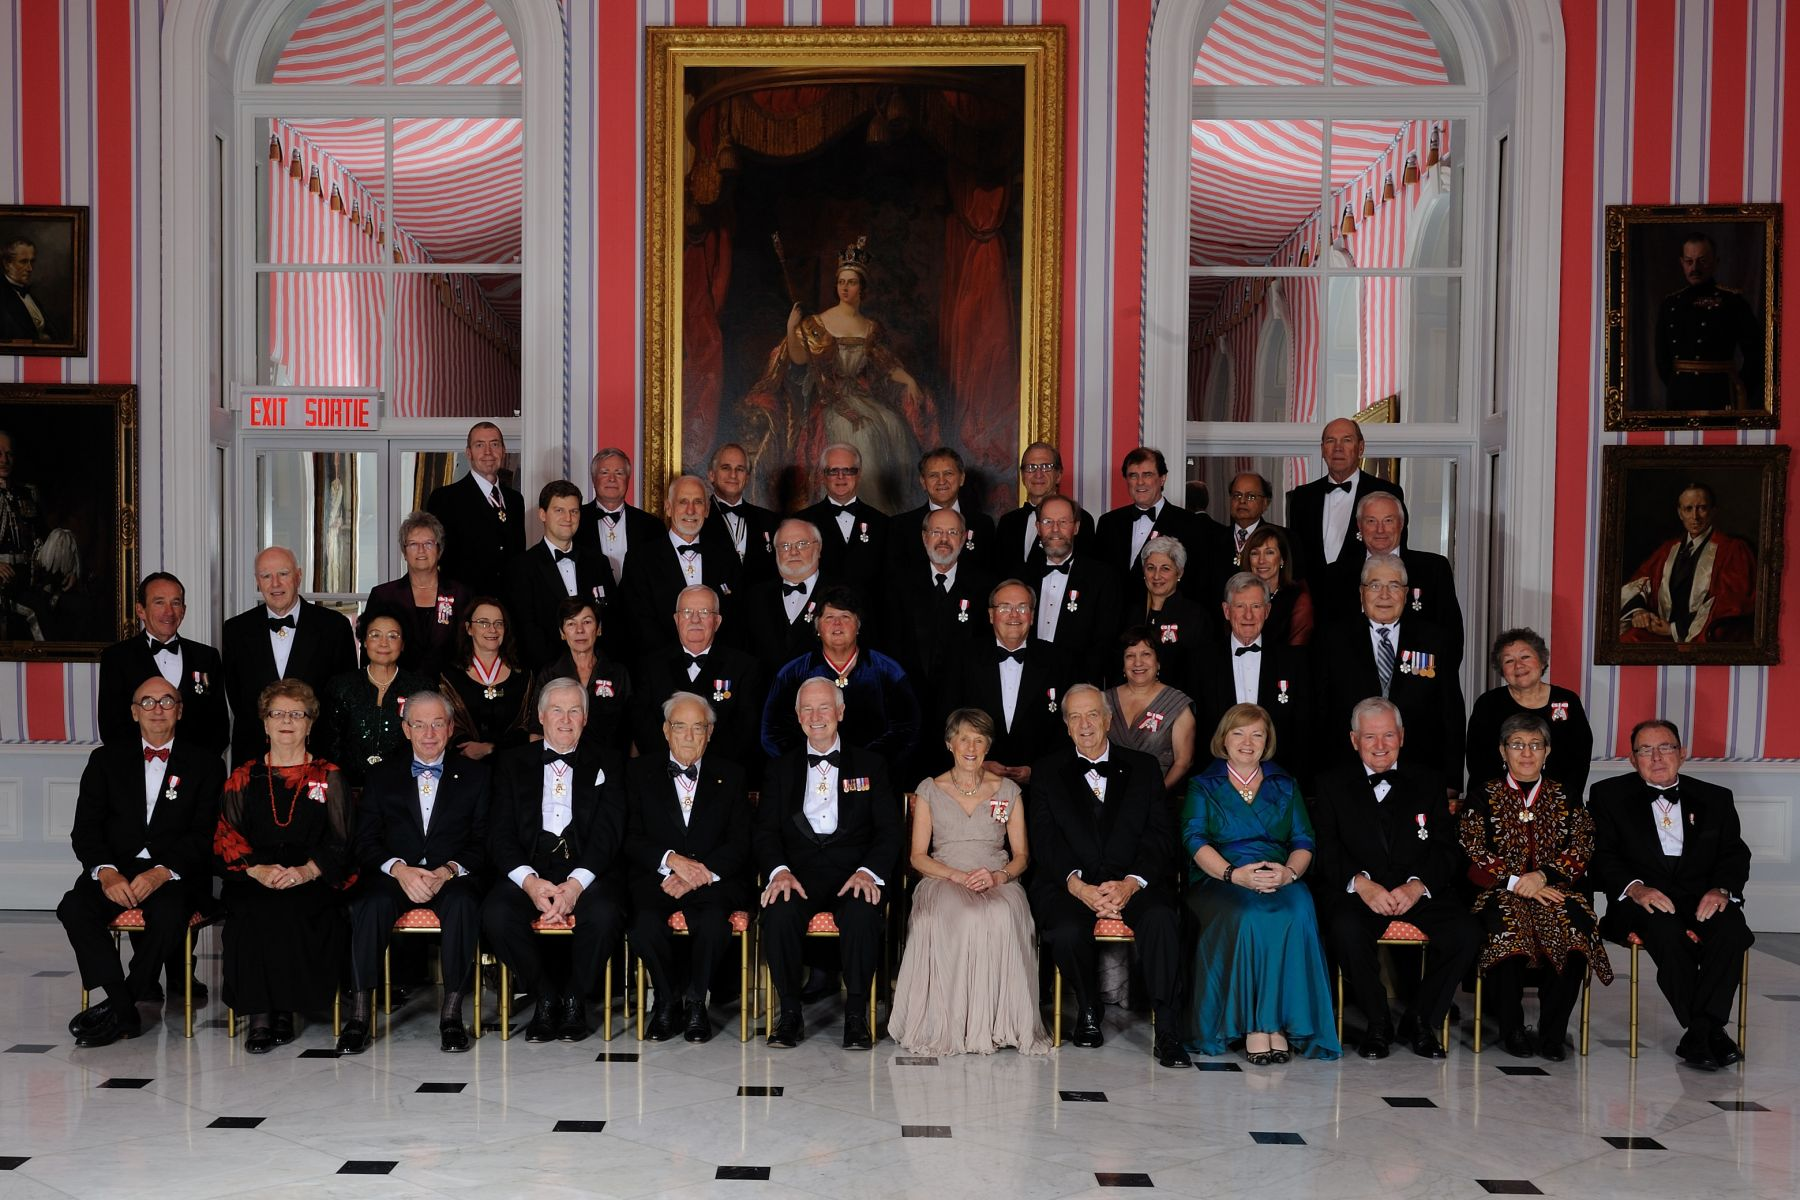 Their Excellencies are pictured with all the Members, Officers and Companions who were invested into the Order of Canada on November 17, 2010.